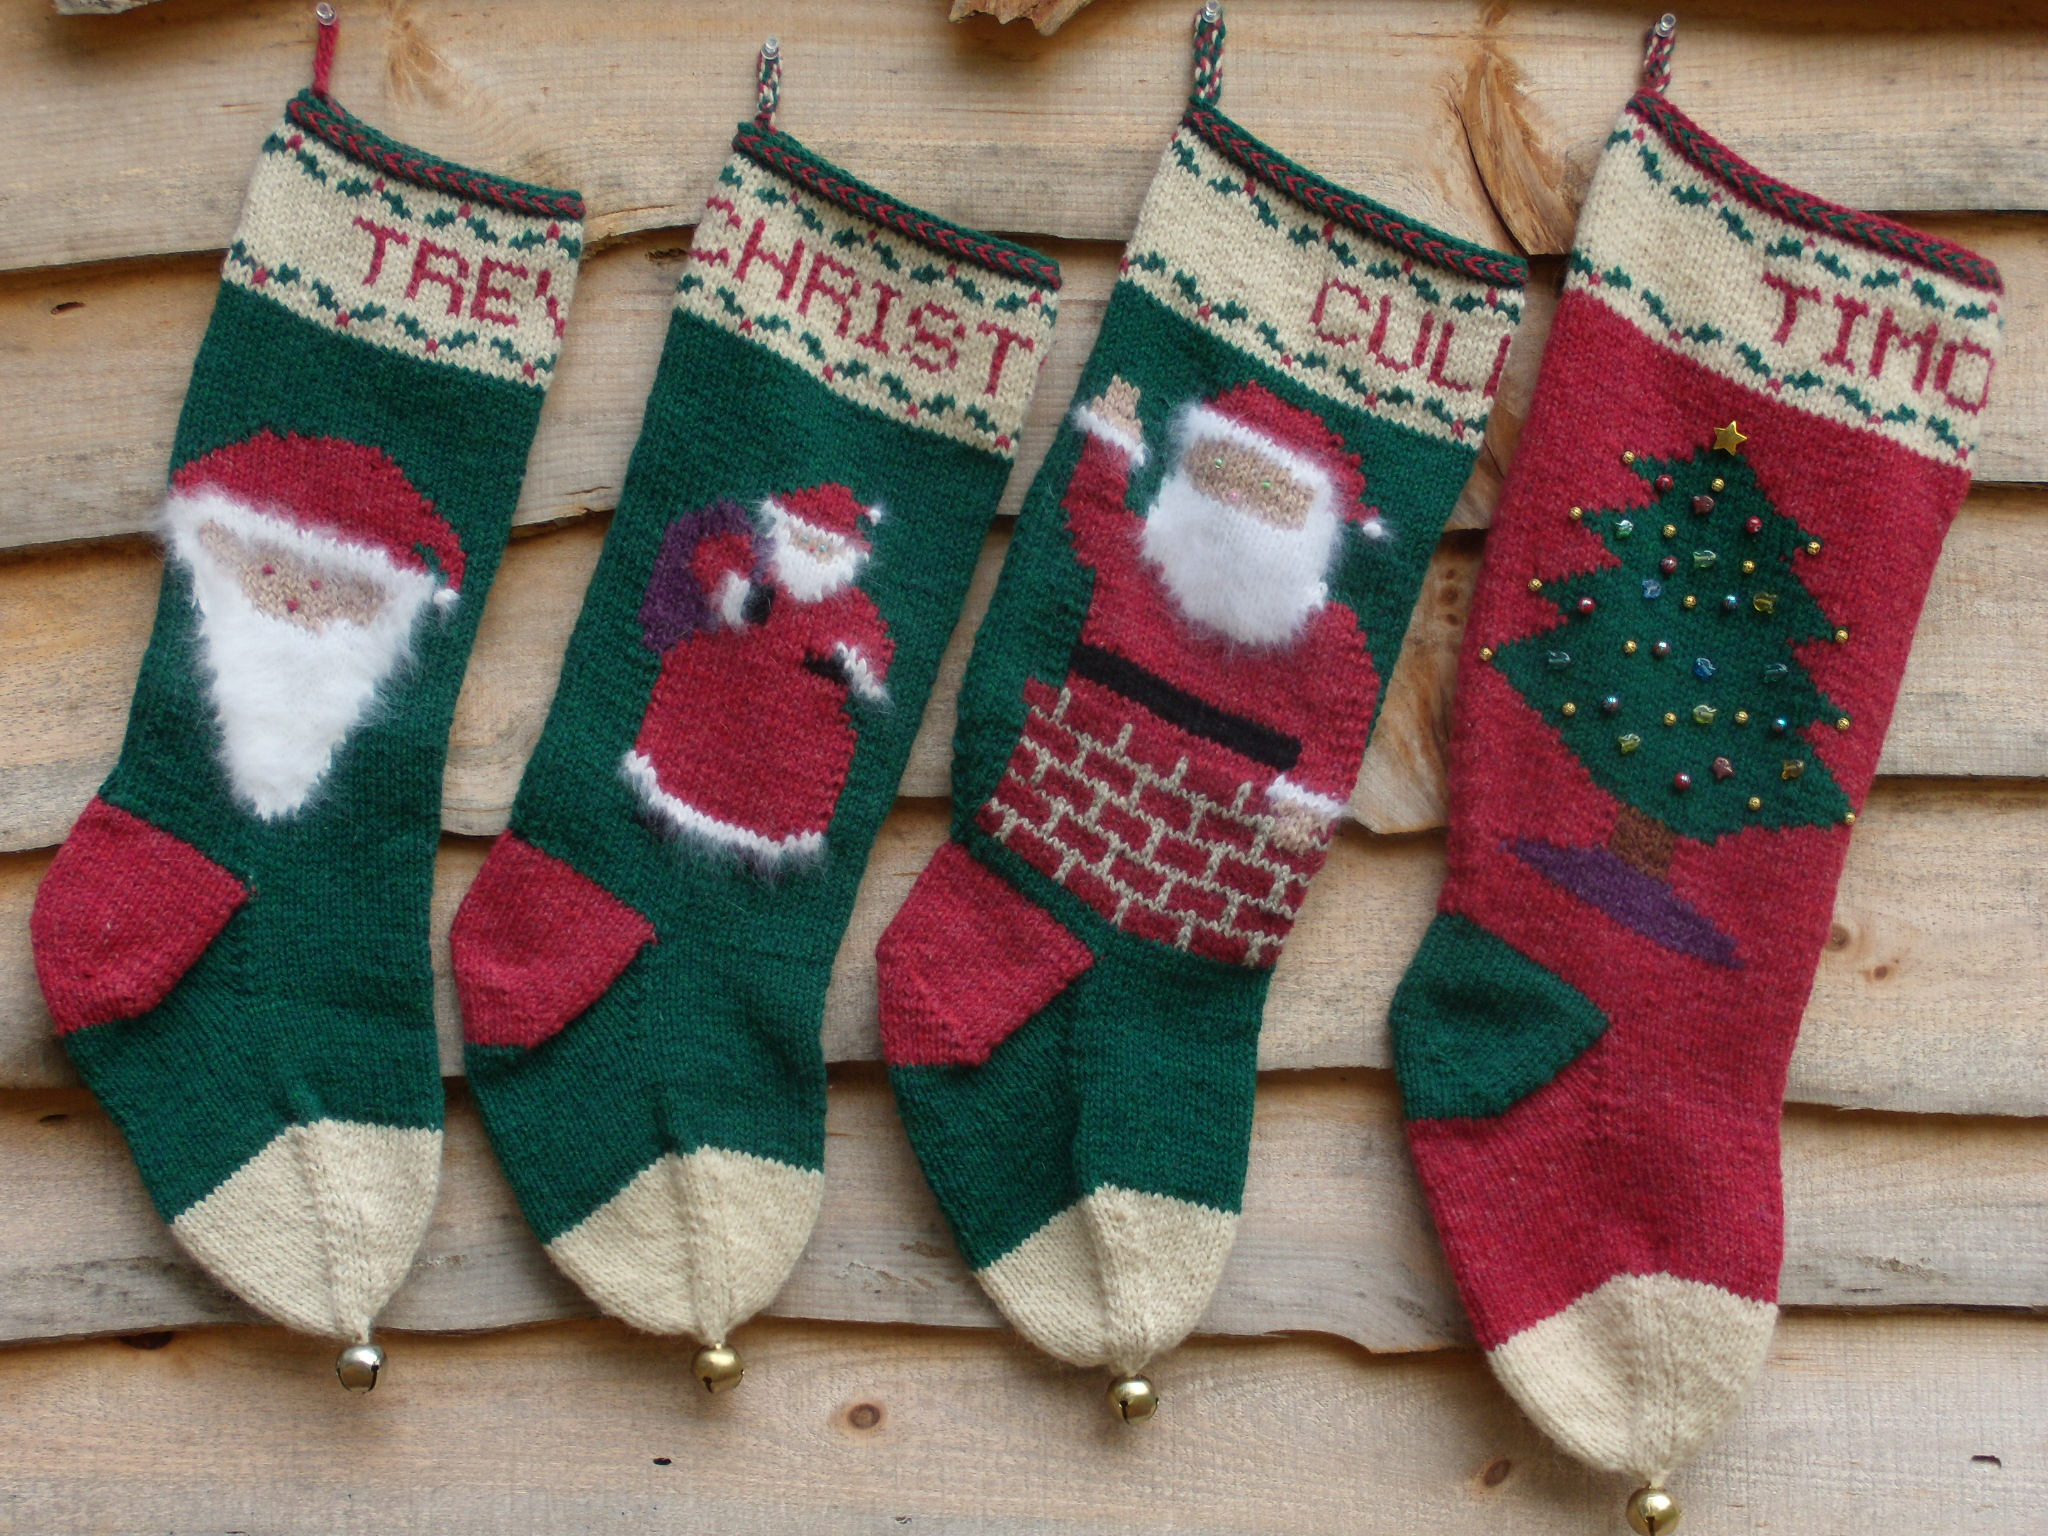 db772311a71 I must admit I feel pretty good having continued a family tradition. The  two collections of stockings are similar yet just a little different.